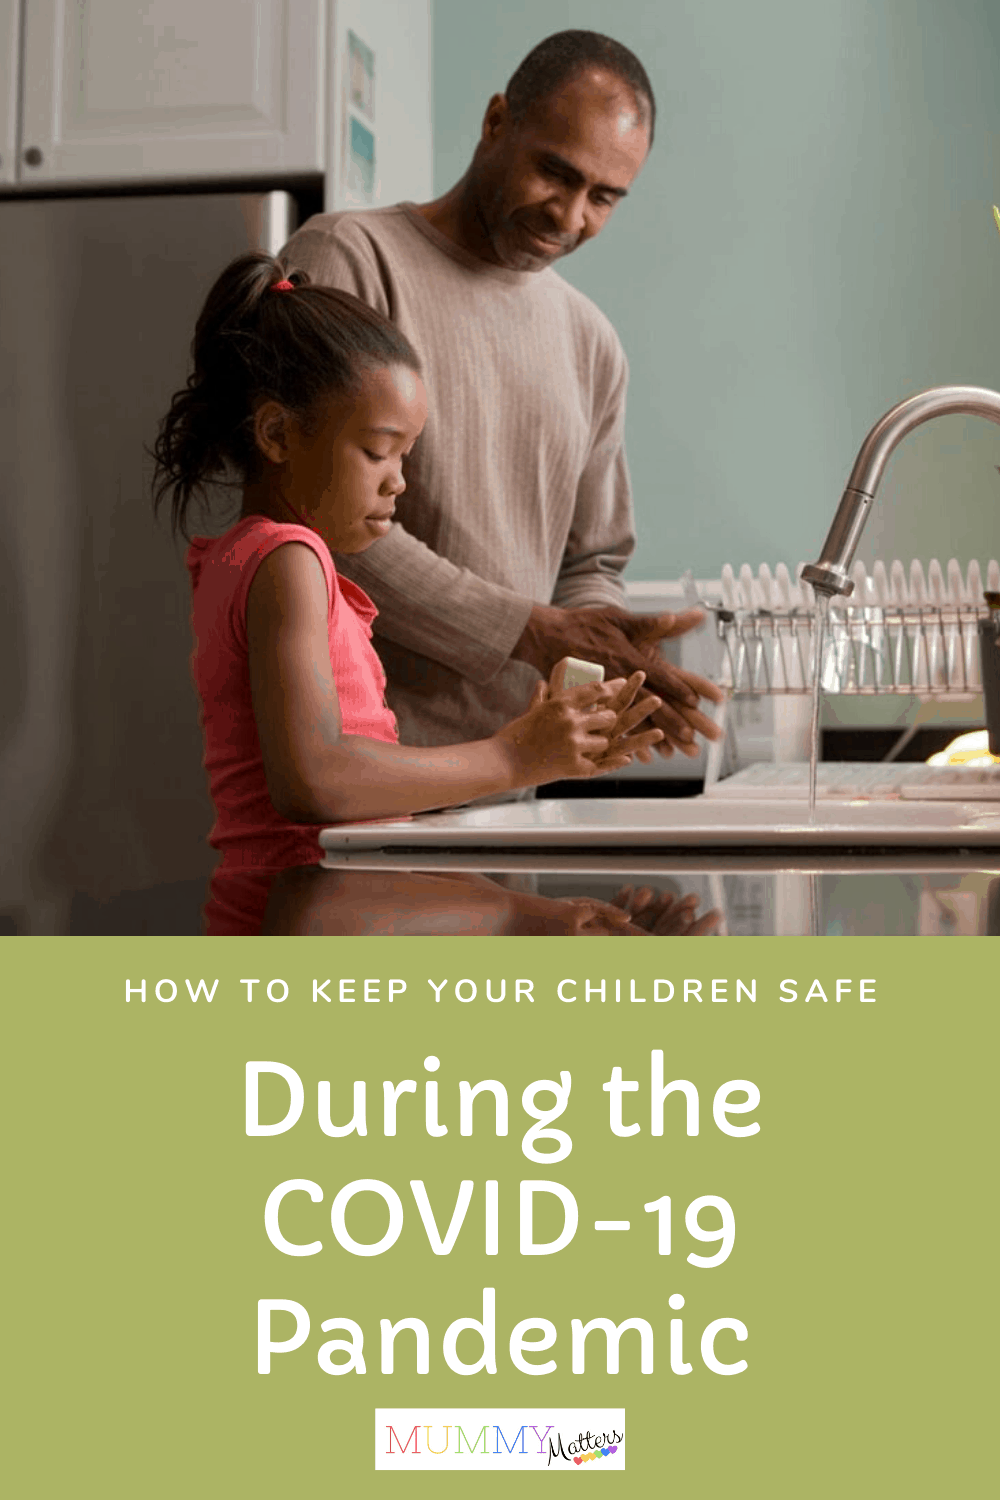 Are you looking to keep your children safe? Here are some ways to support your children's physical and mental health needs during the COVID-19 pandemic